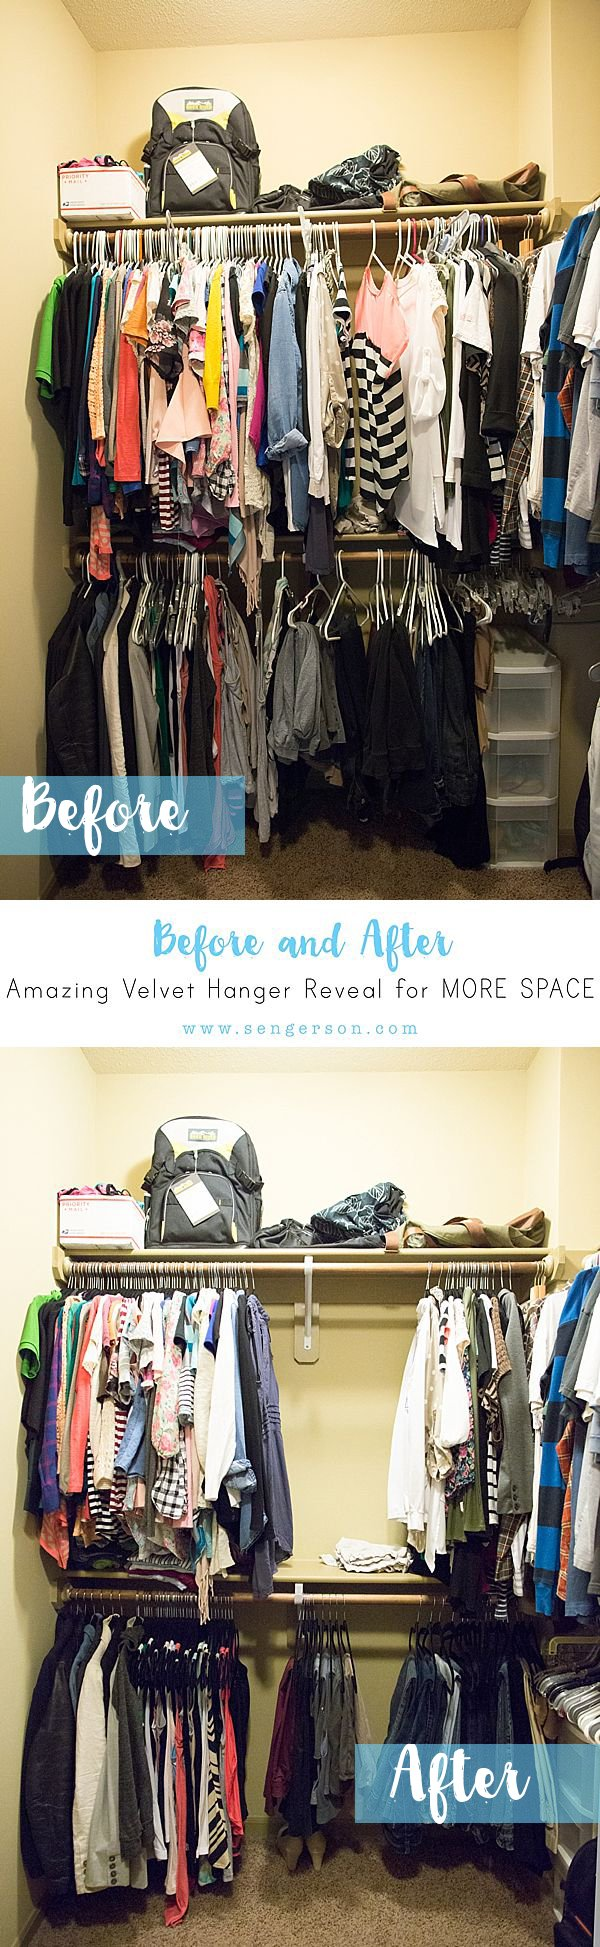 closet-before-and-after-reveal